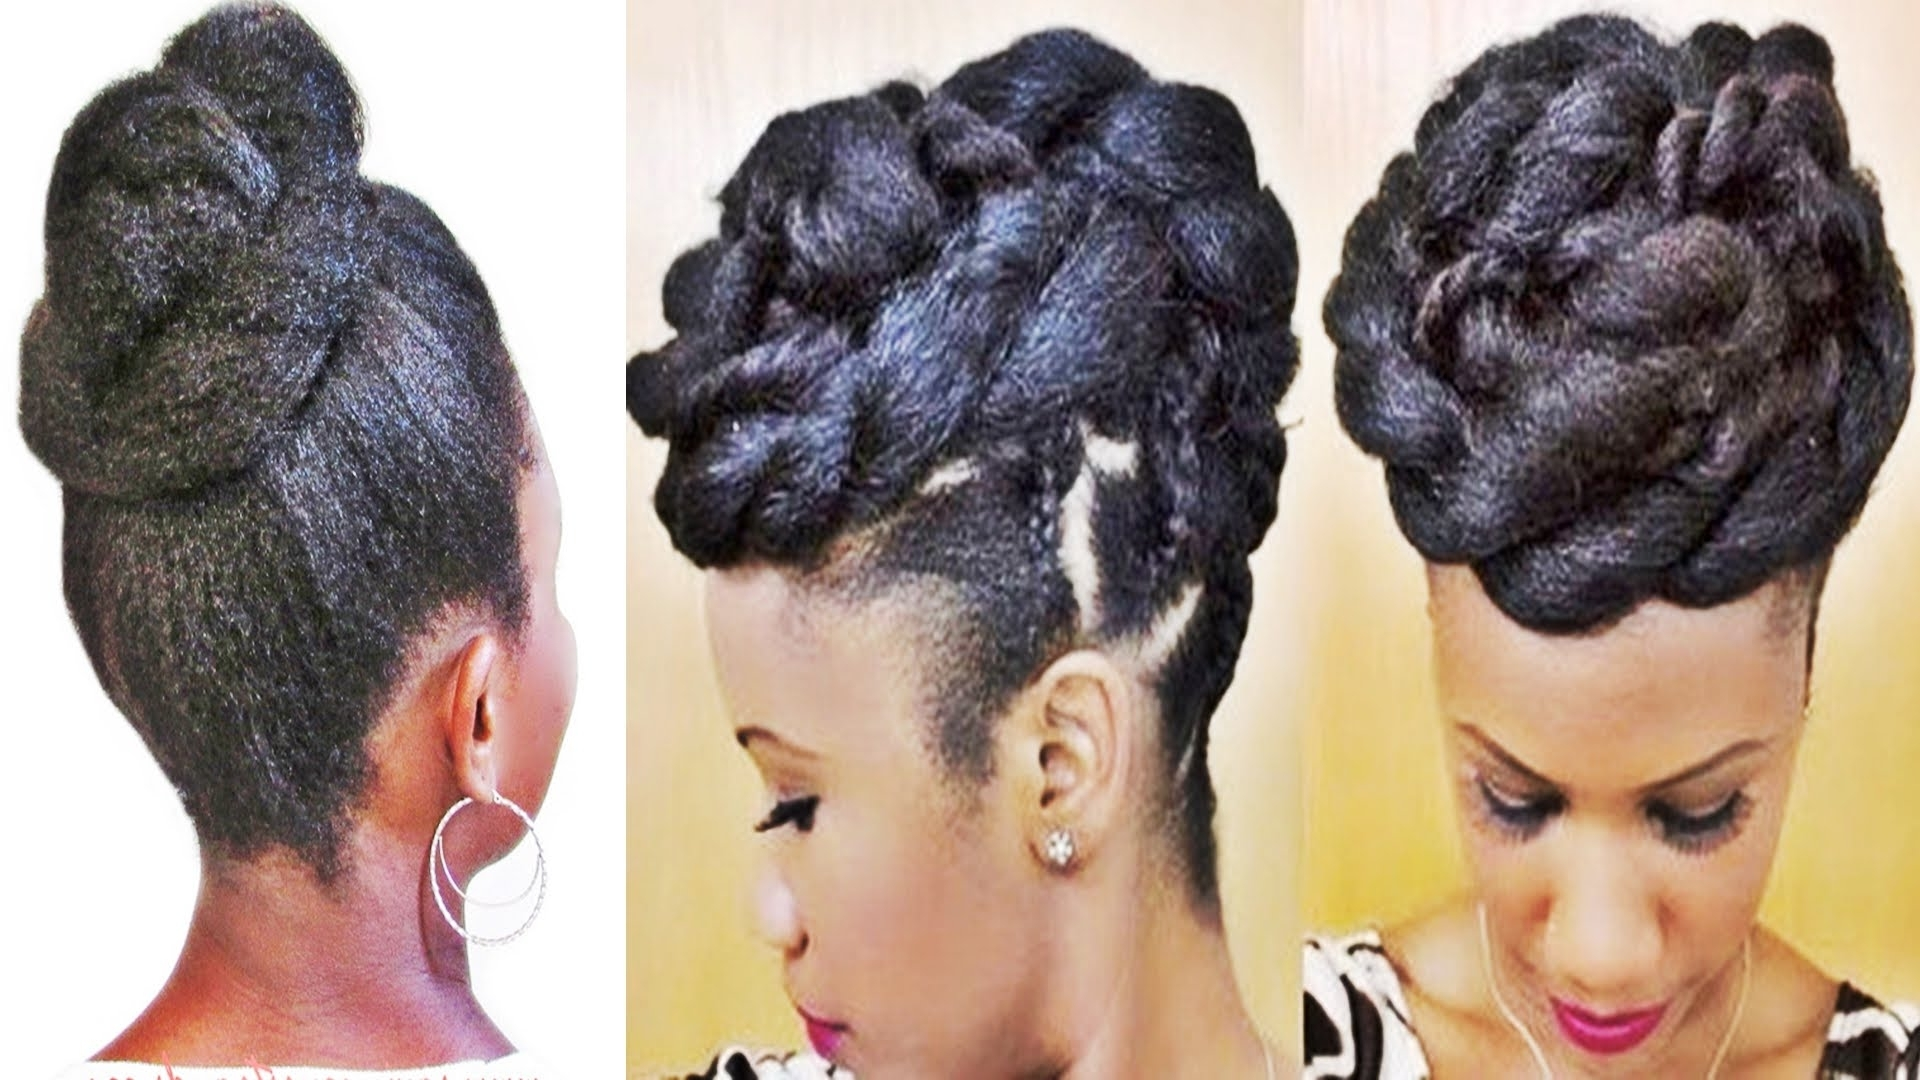 Braids And Twists Updo Hairstyle For Black Women – Youtube Throughout Cornrow Updo Hairstyles For Black Women (View 6 of 15)